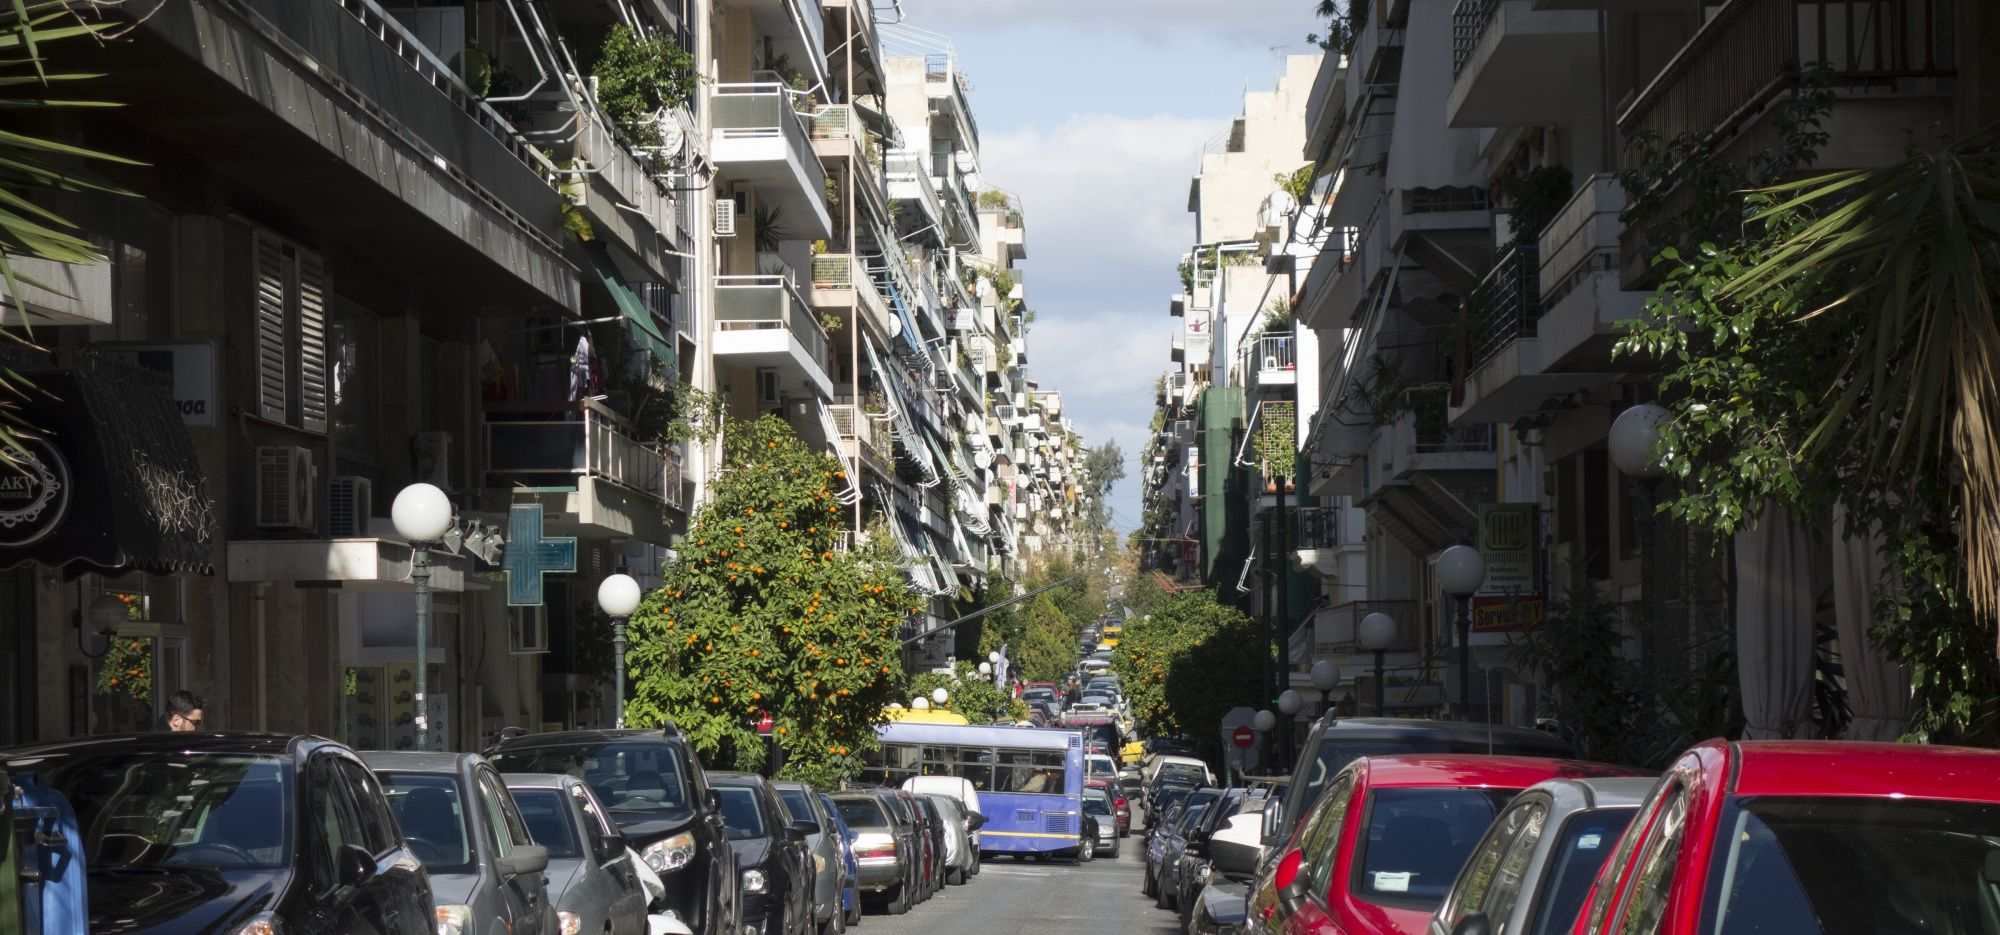 How Athens' modernist polikatoika came to define its mixed social fabric